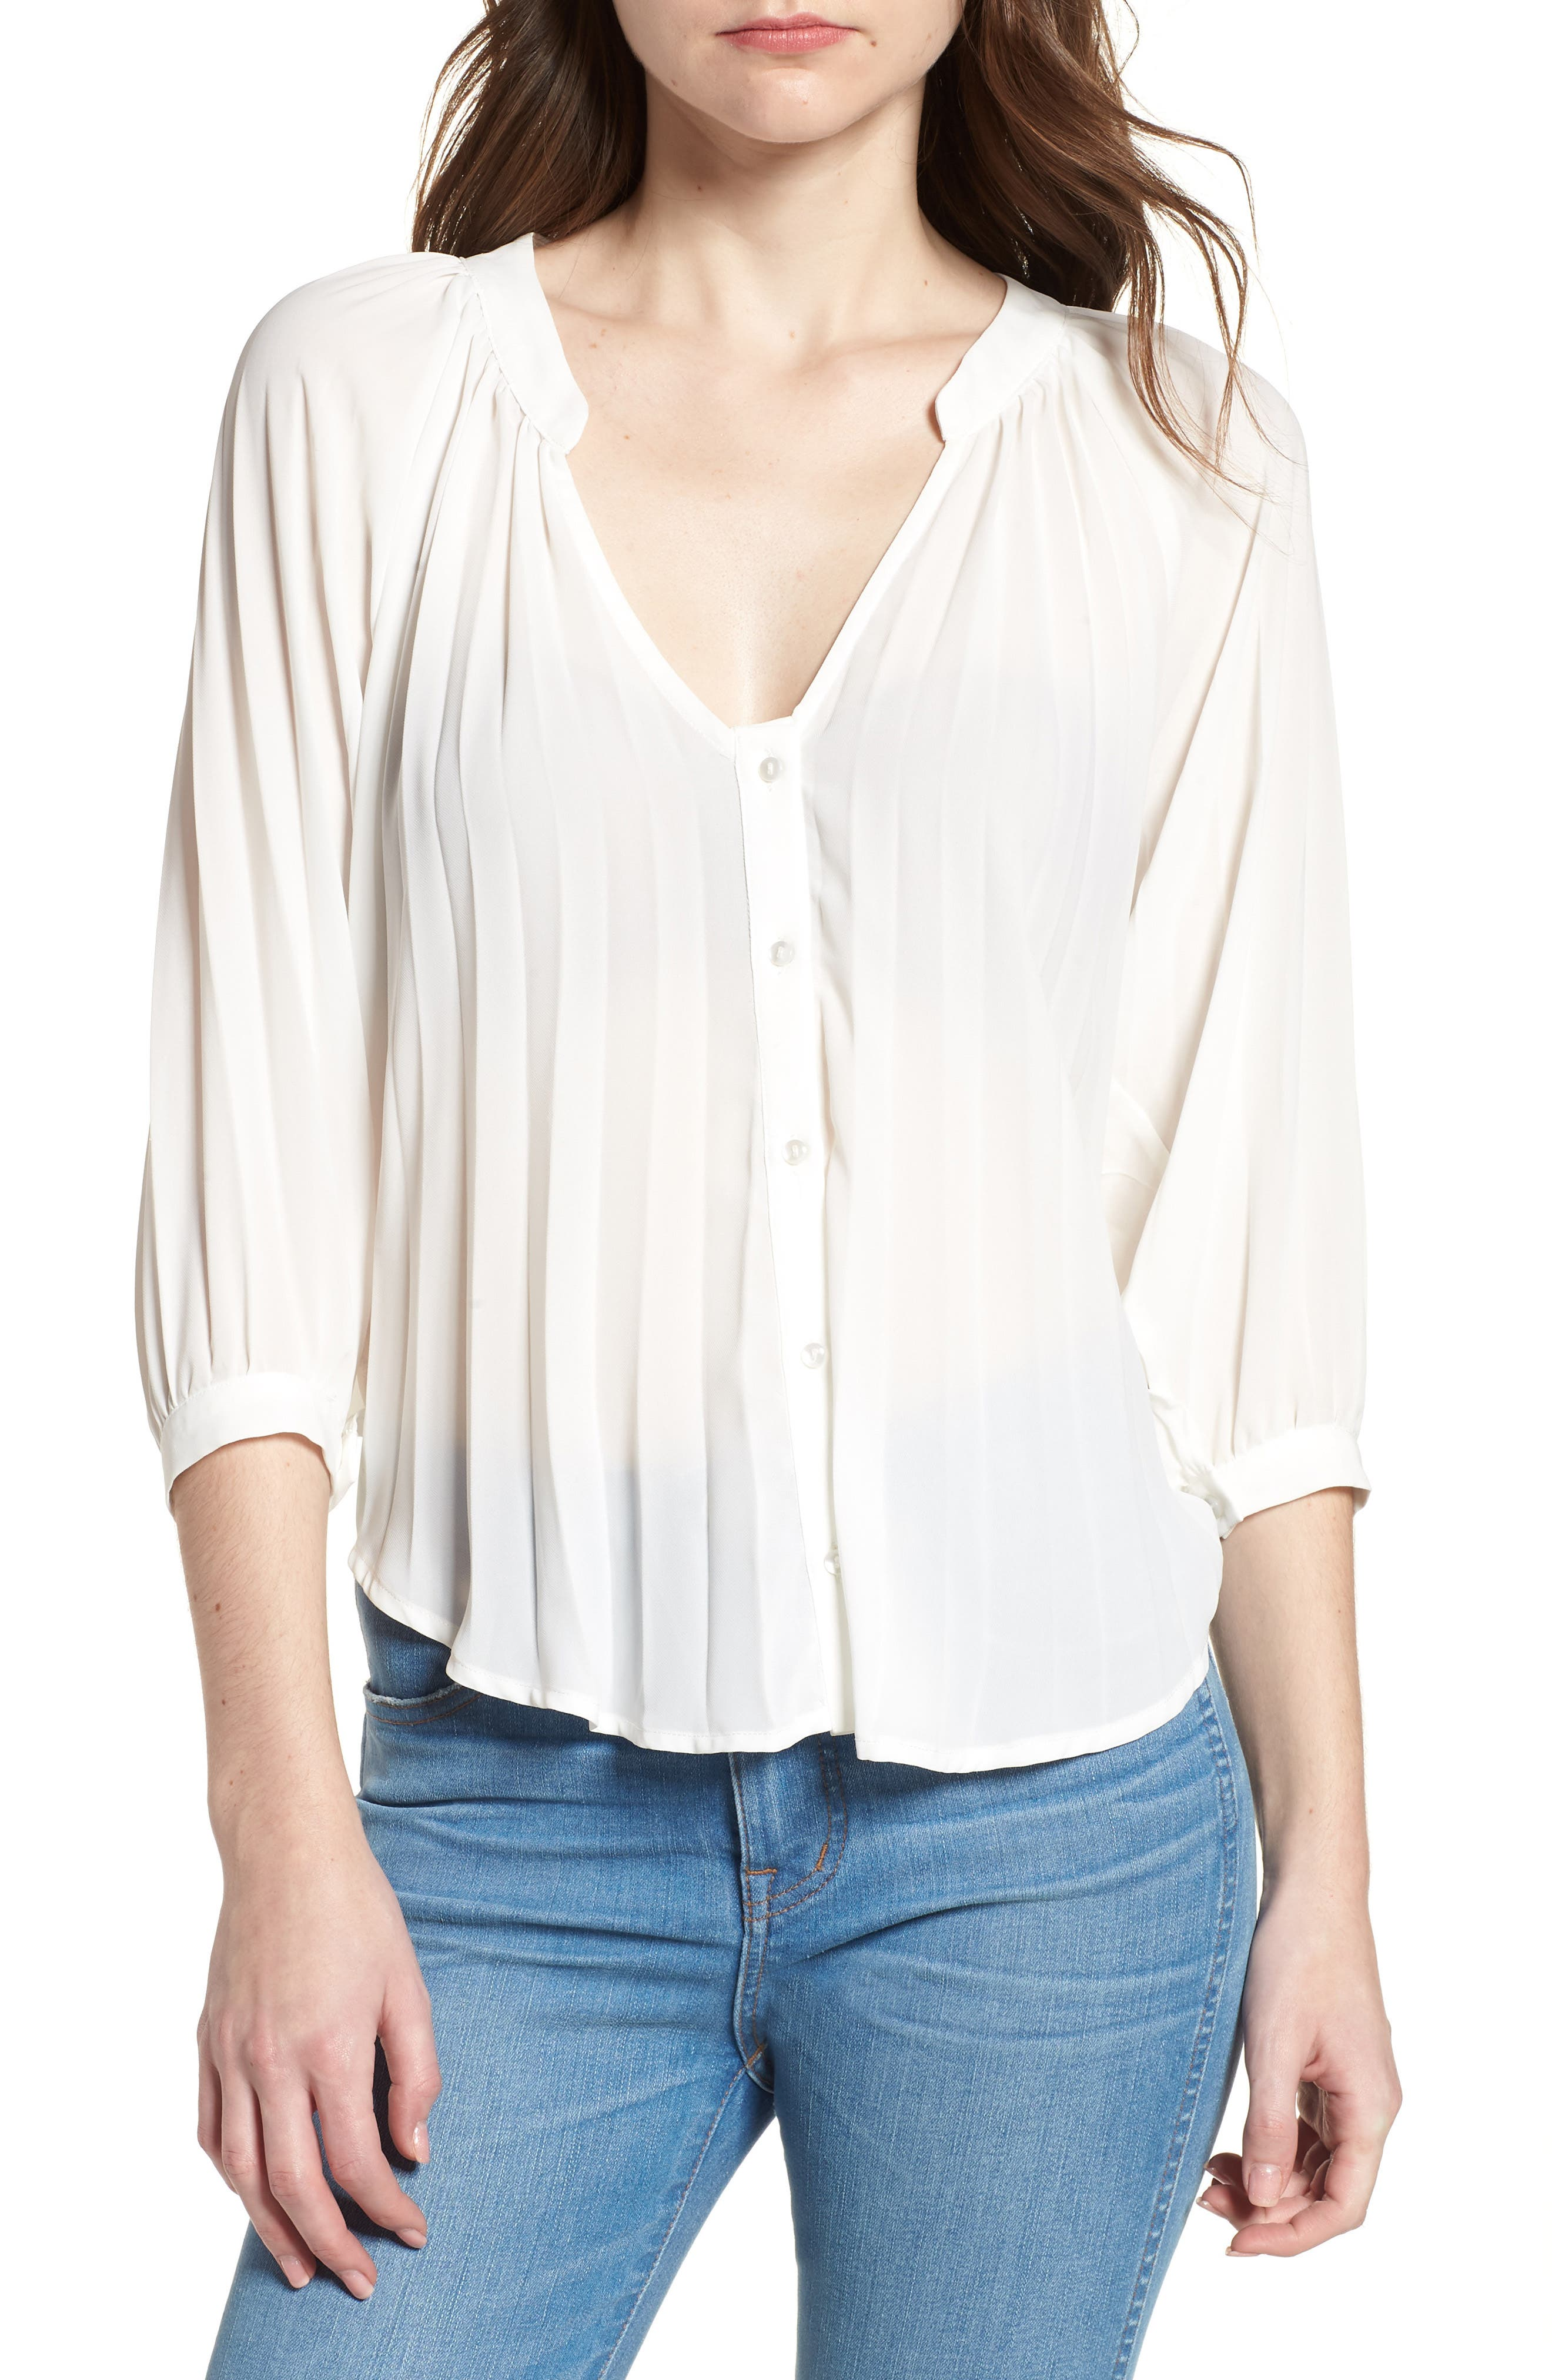 Bishop + Young Pleated Top,                             Main thumbnail 1, color,                             WHITE